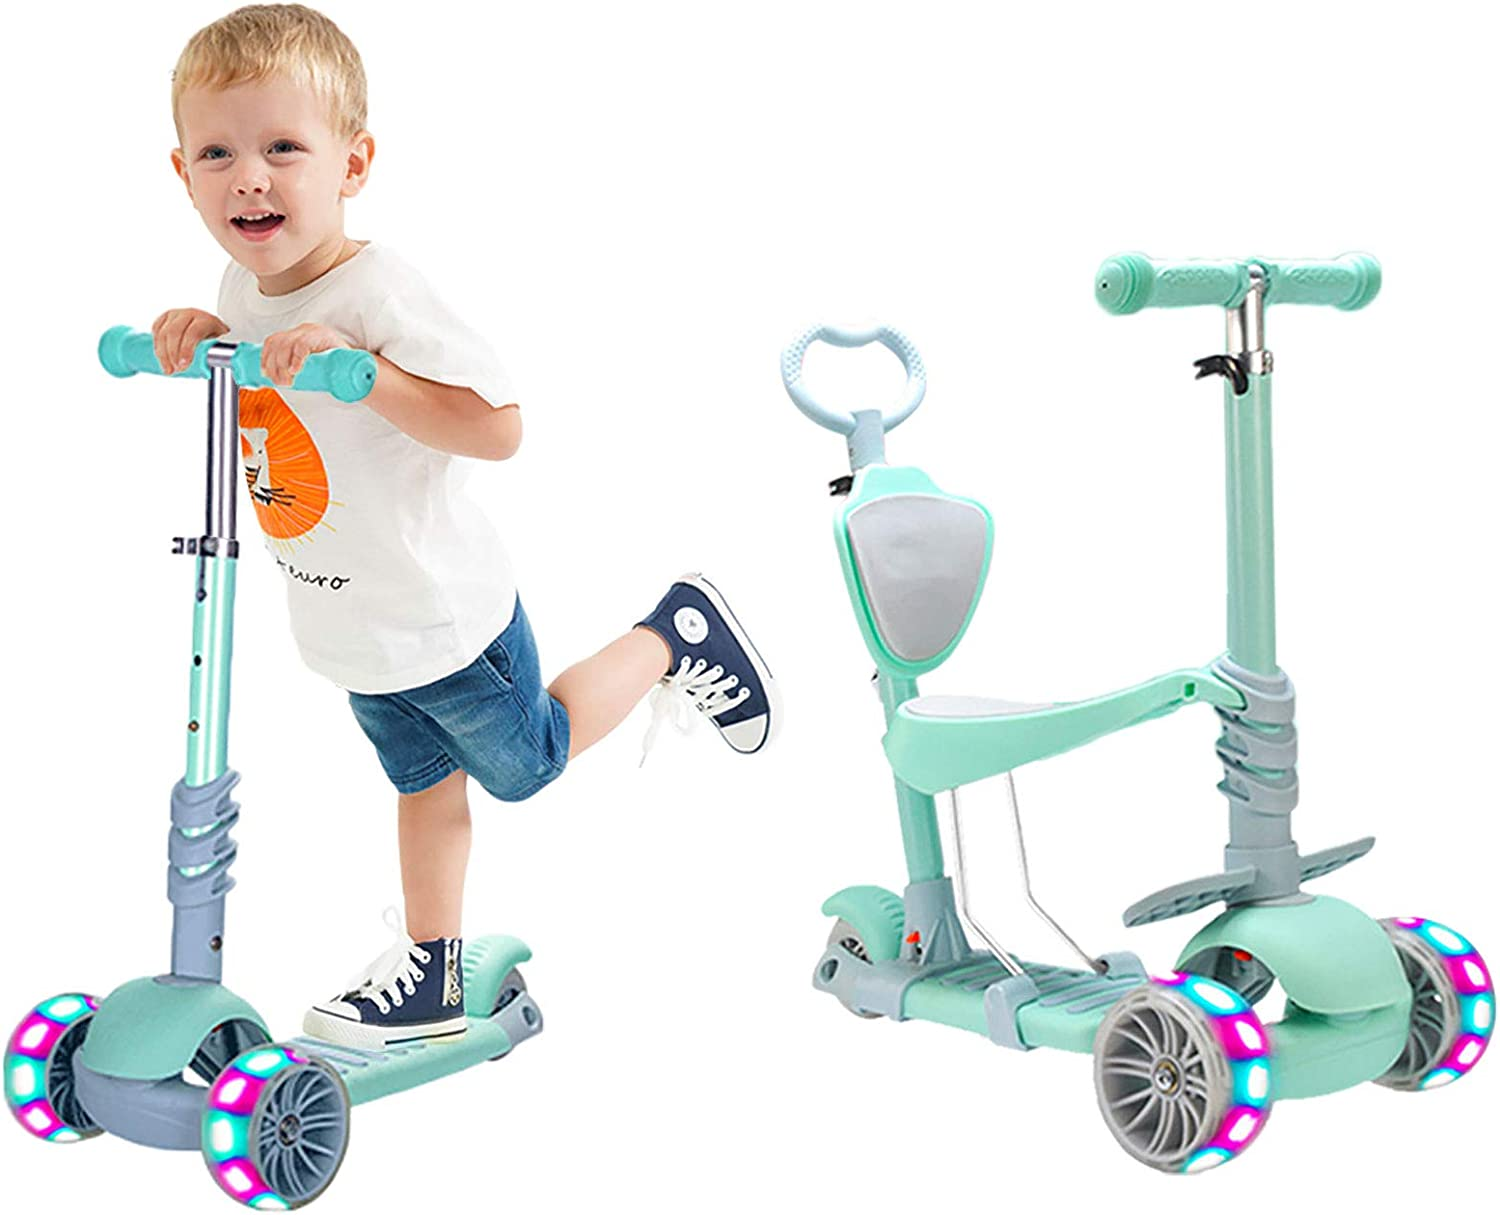 5 in 1 Kids Kick Scooter, 3 Wheels Walker with Removable Seat